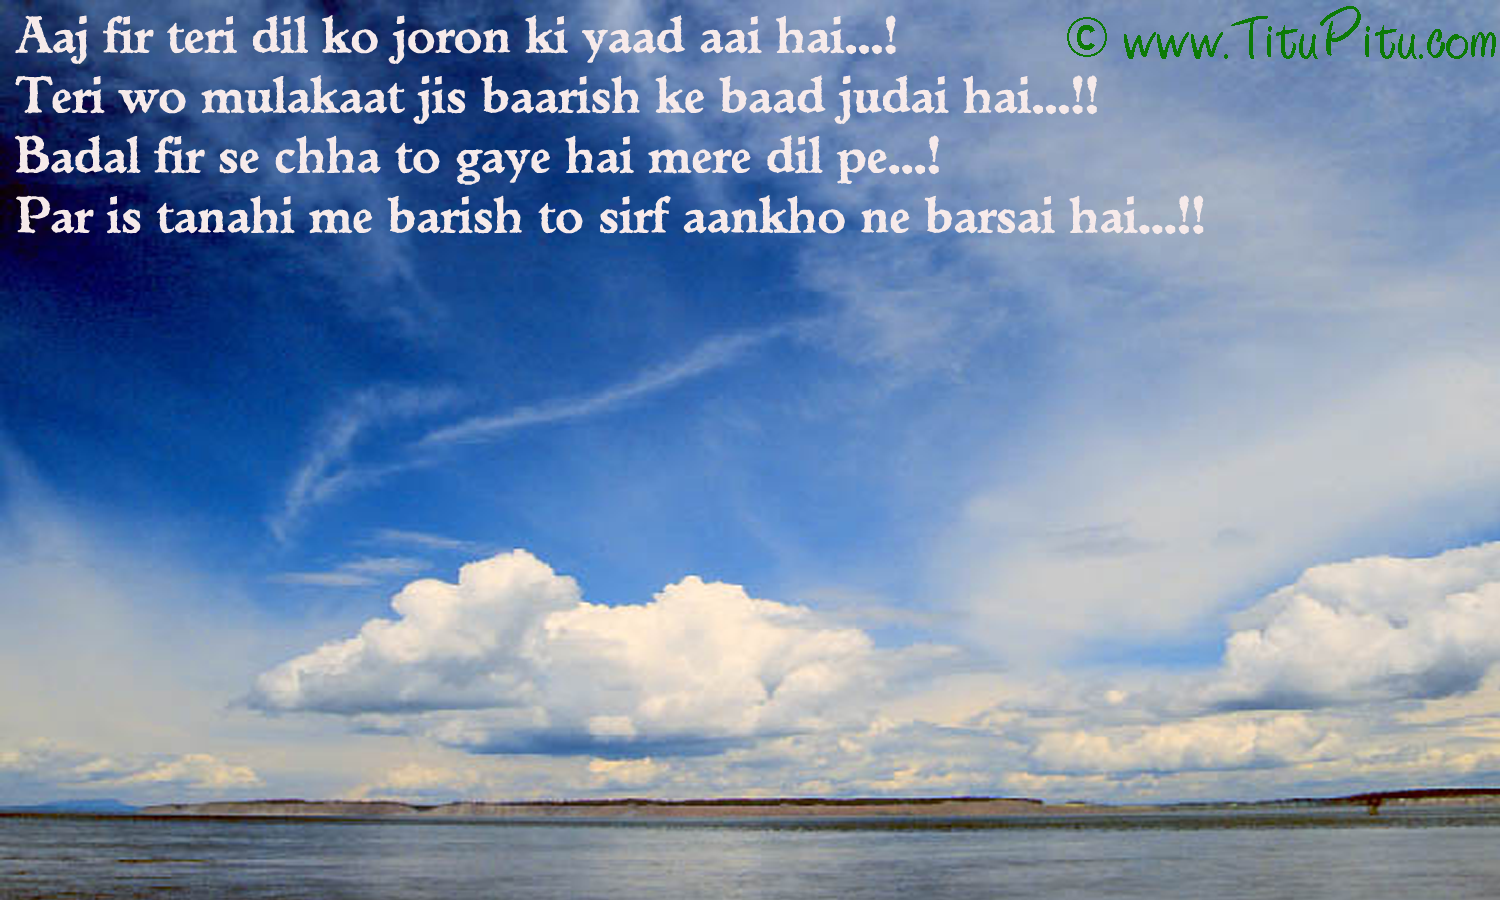 Dard-bhari-Shayari-in-Hindi